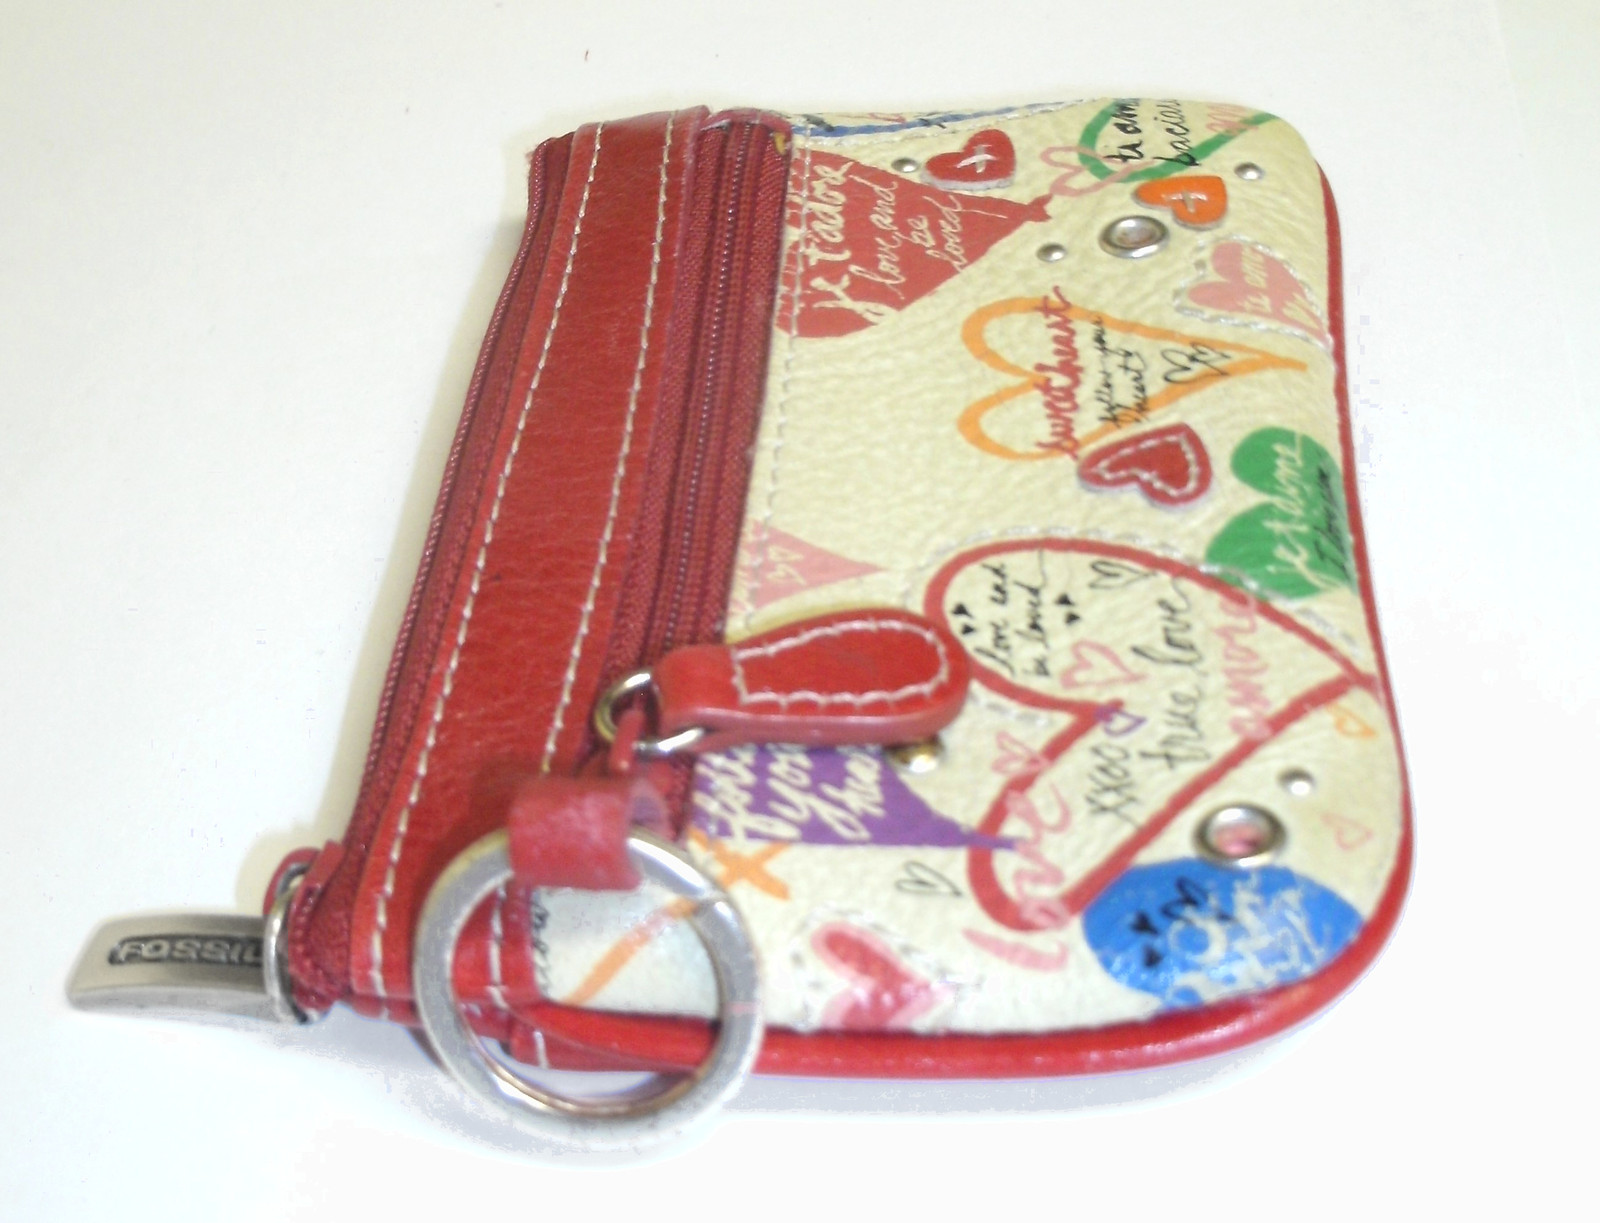 Fossil Mini ID Wallet Coin Purse Red Leather Heart Love Keychain image 5